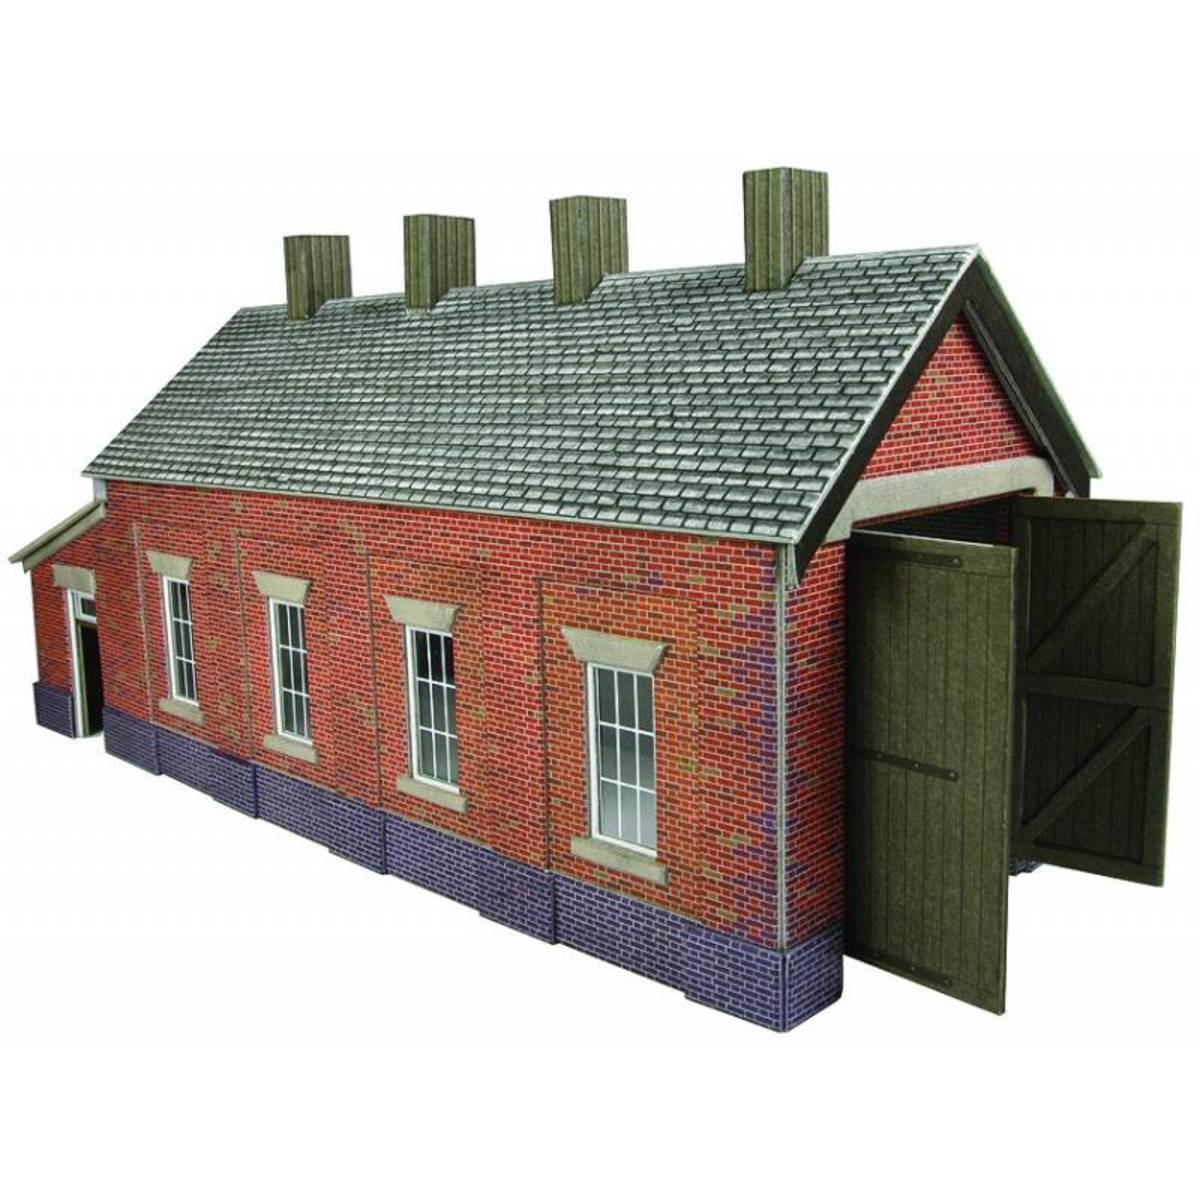 A single road branchline loco shed awaits its allocation. Although it's already fairly complete an able modeller might enhance it, bring it to life with a few personal touches from observation